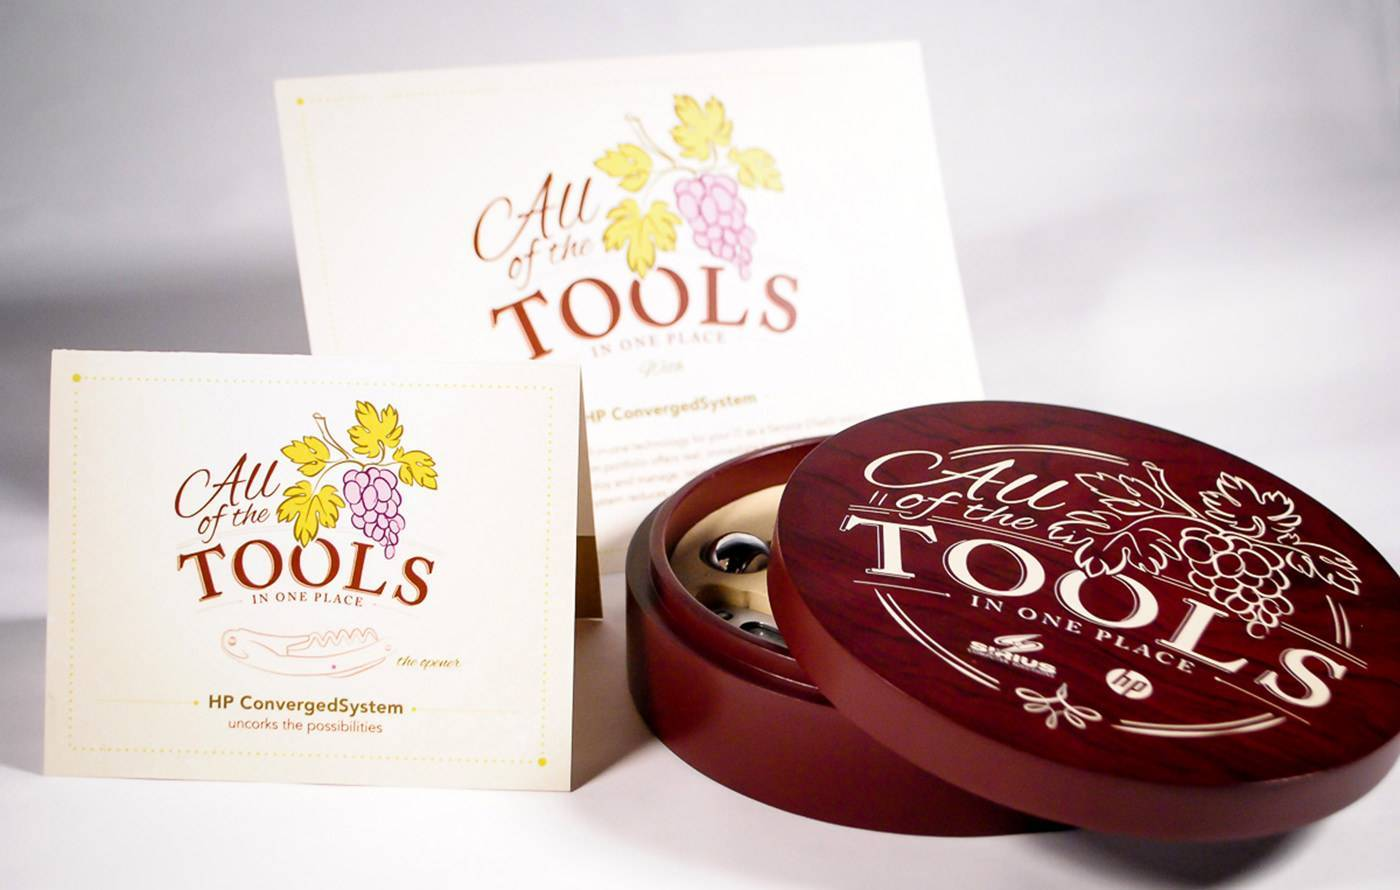 All of the Tools Campaign